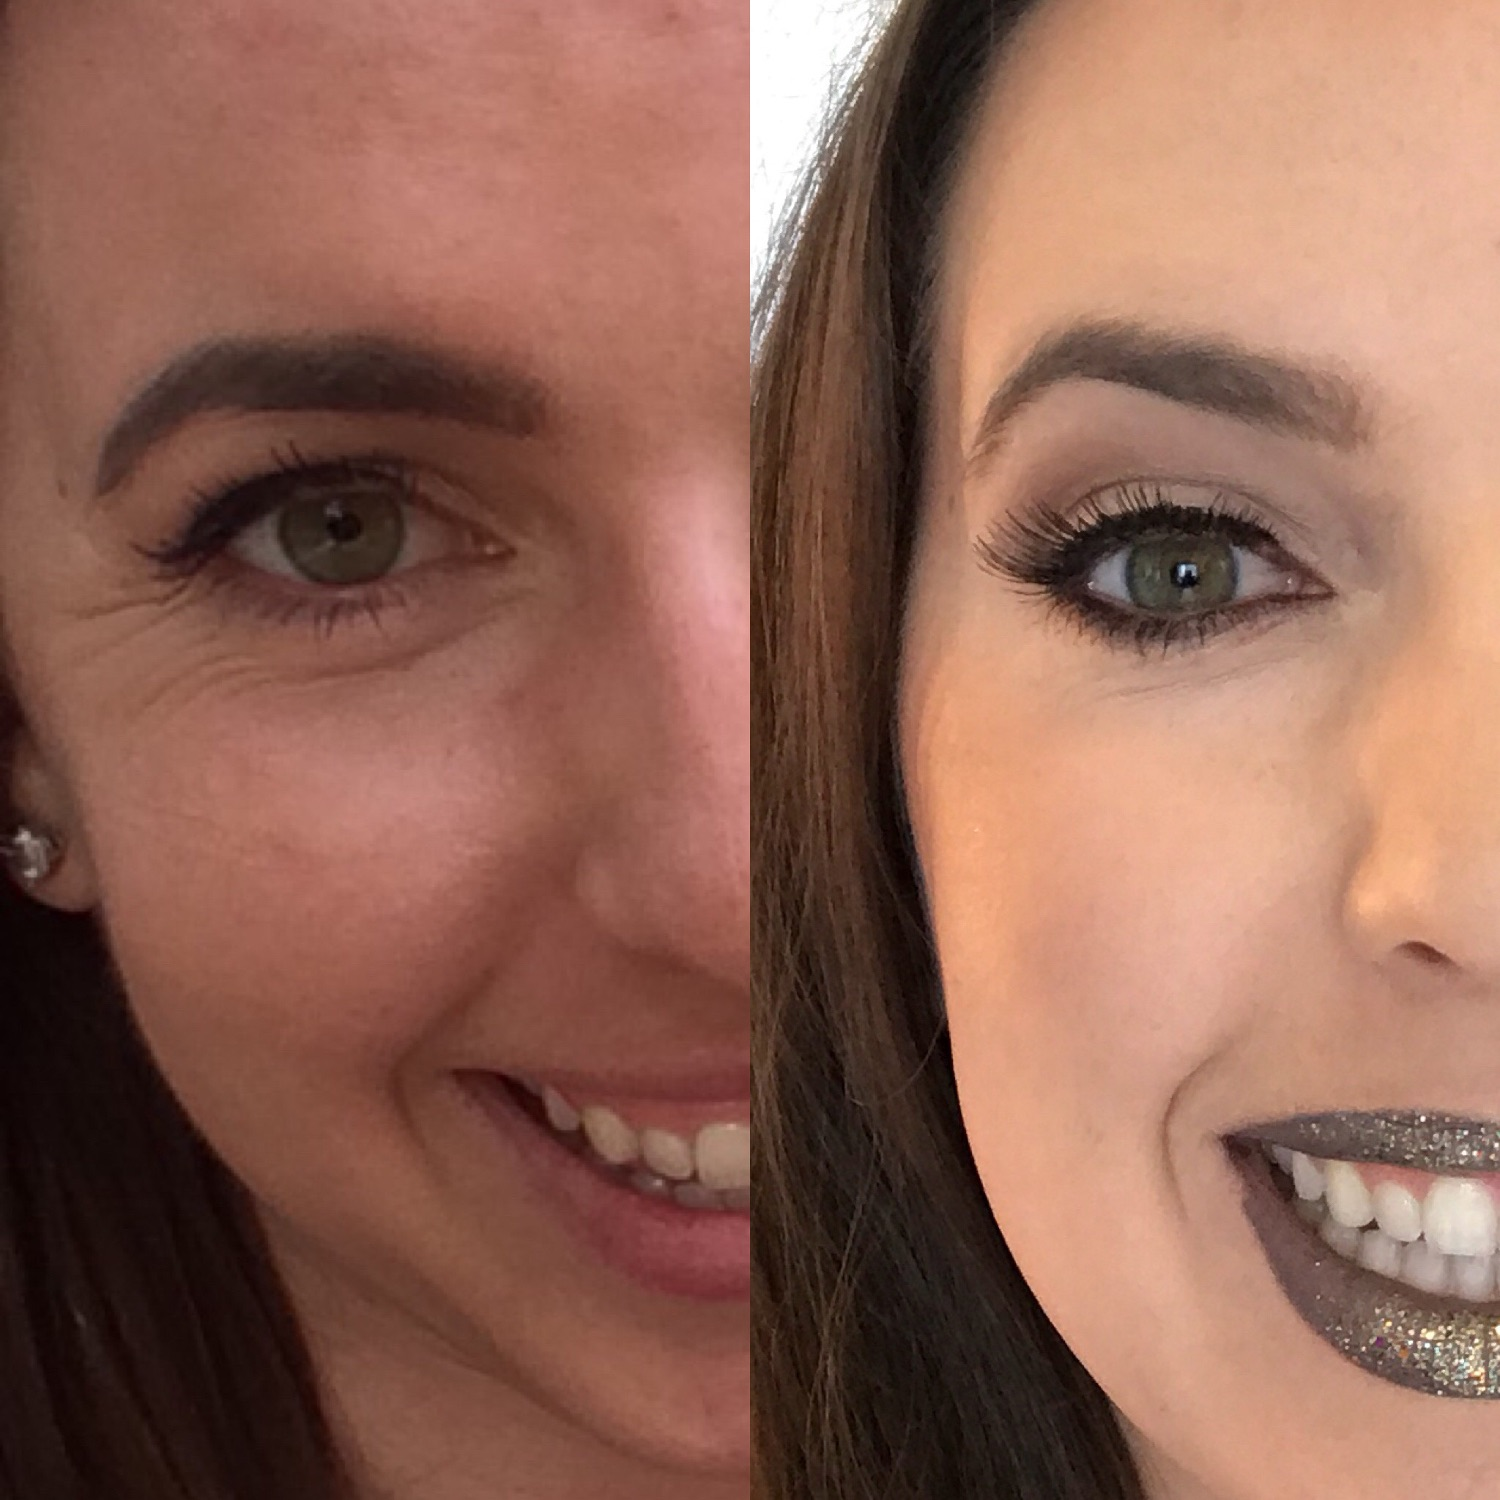 crows feet botox before and after